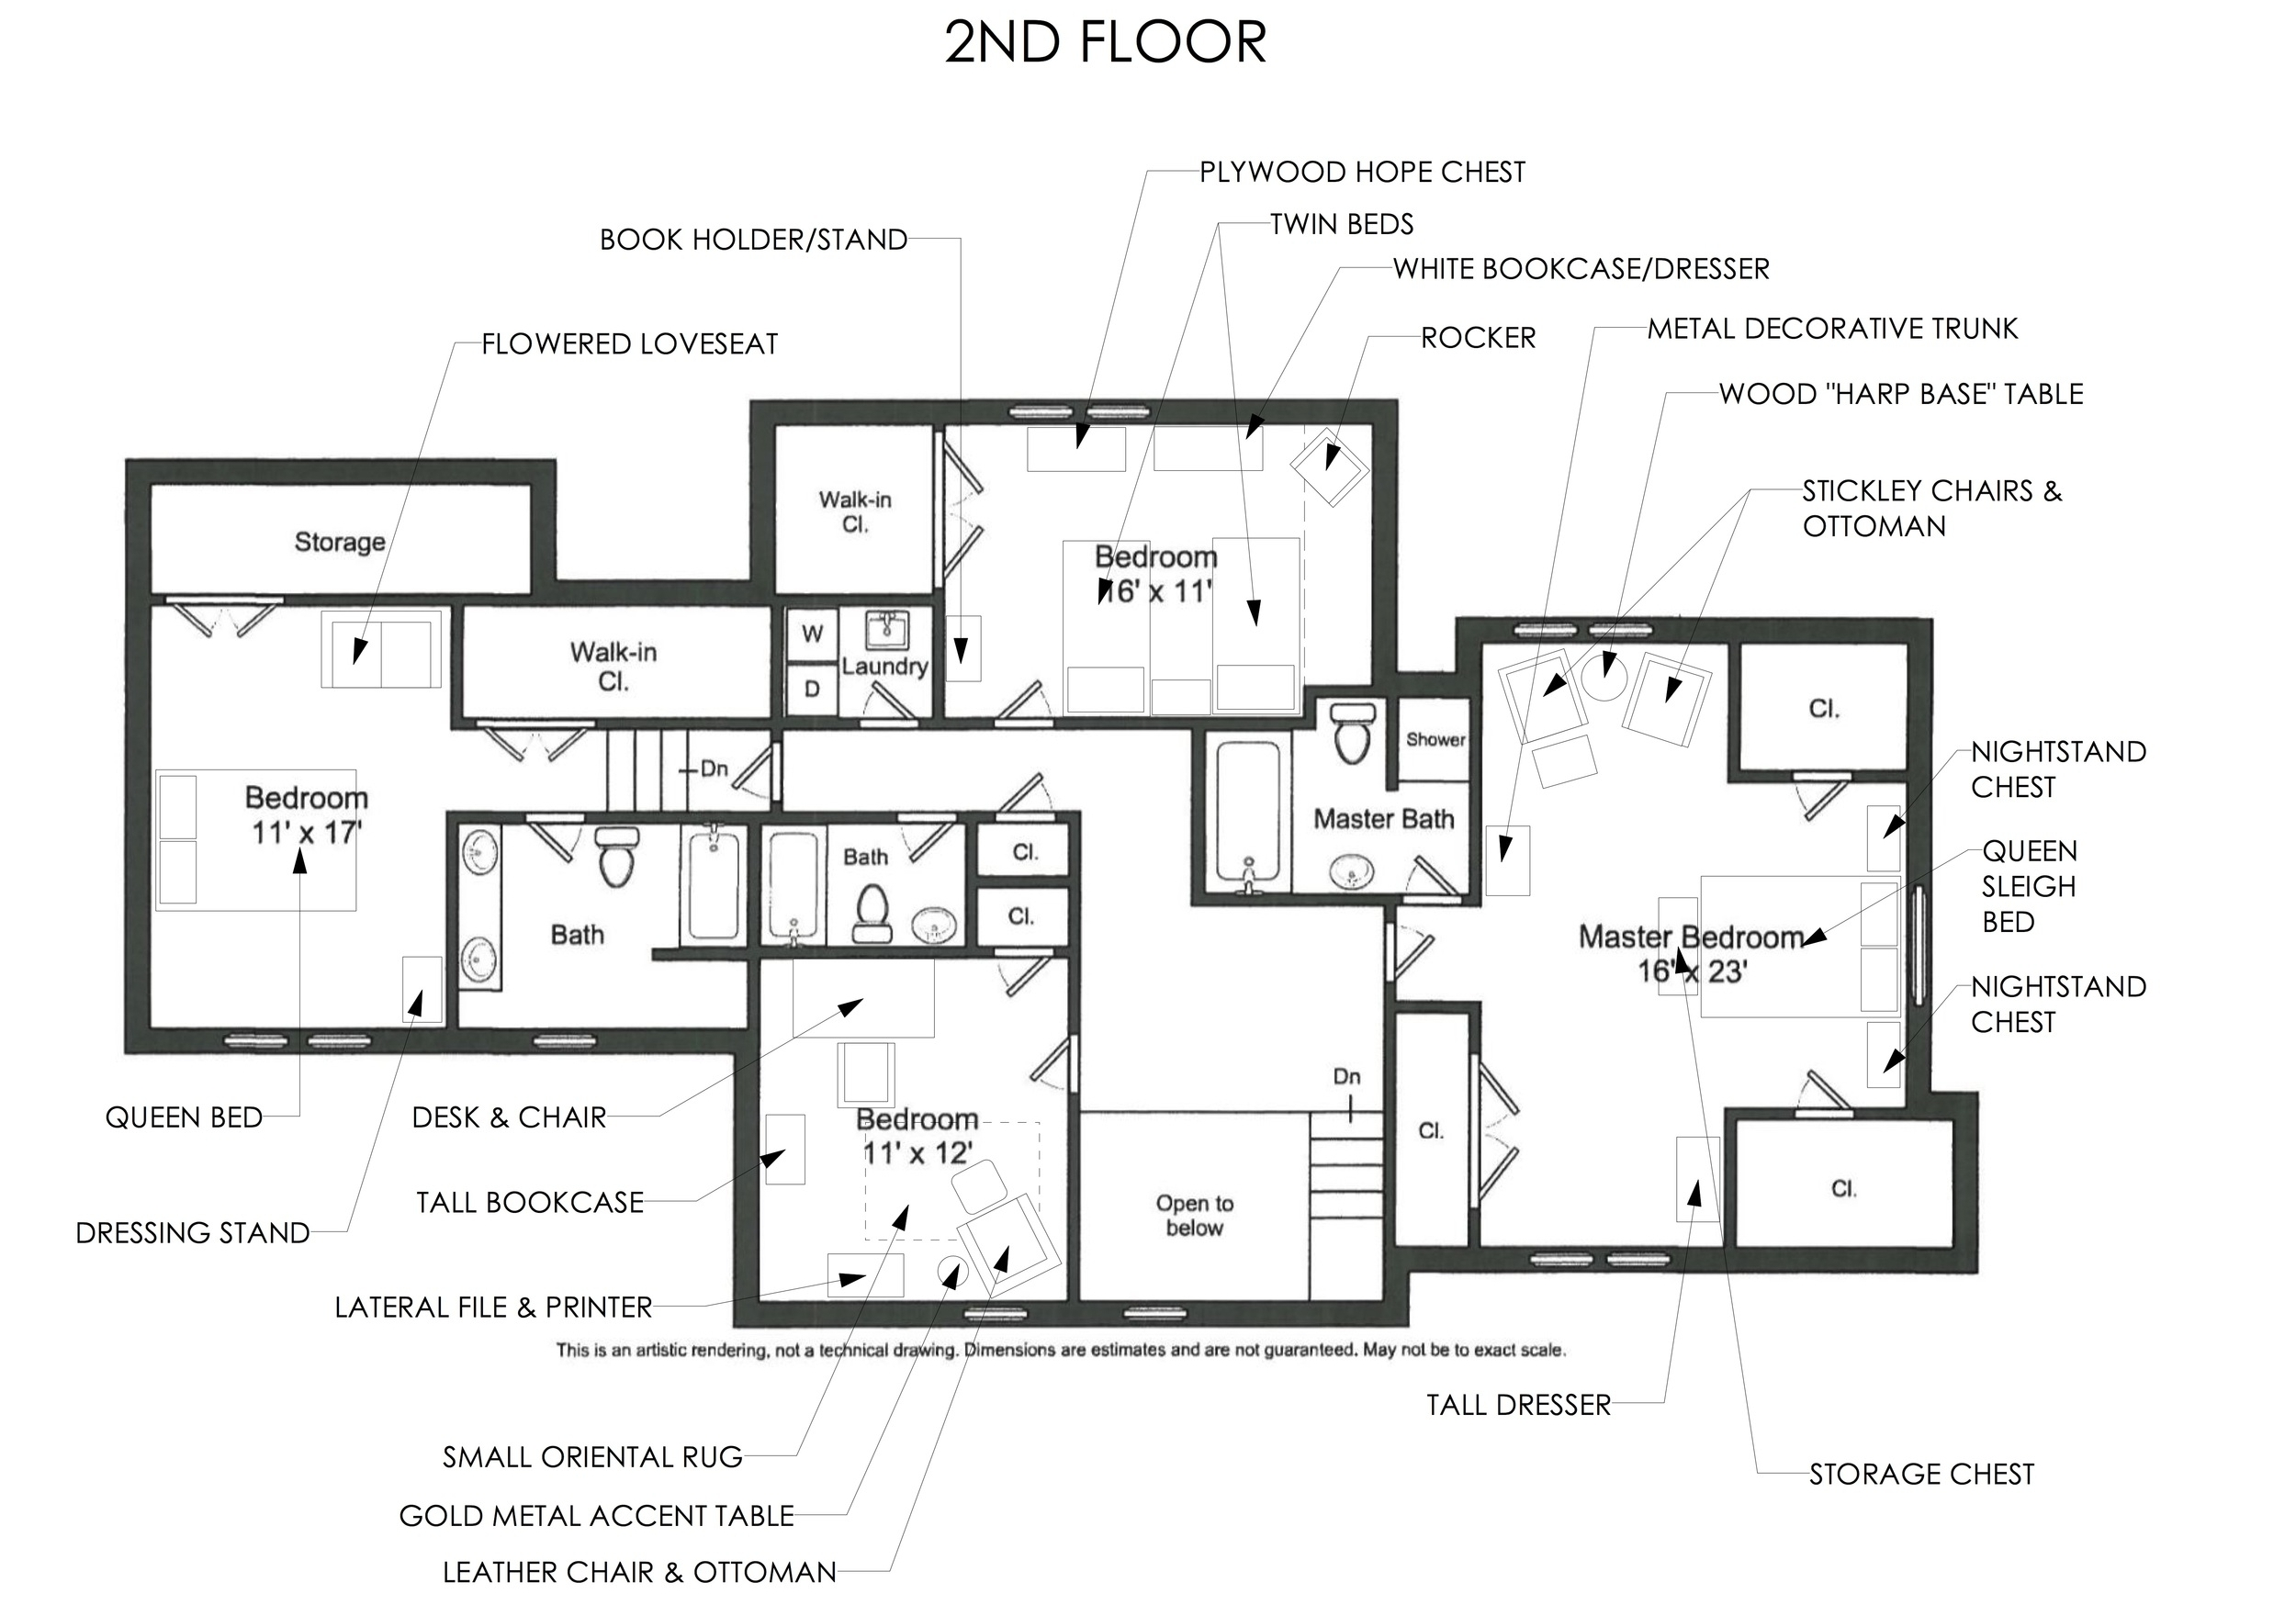 2nd Floor Moving Plan